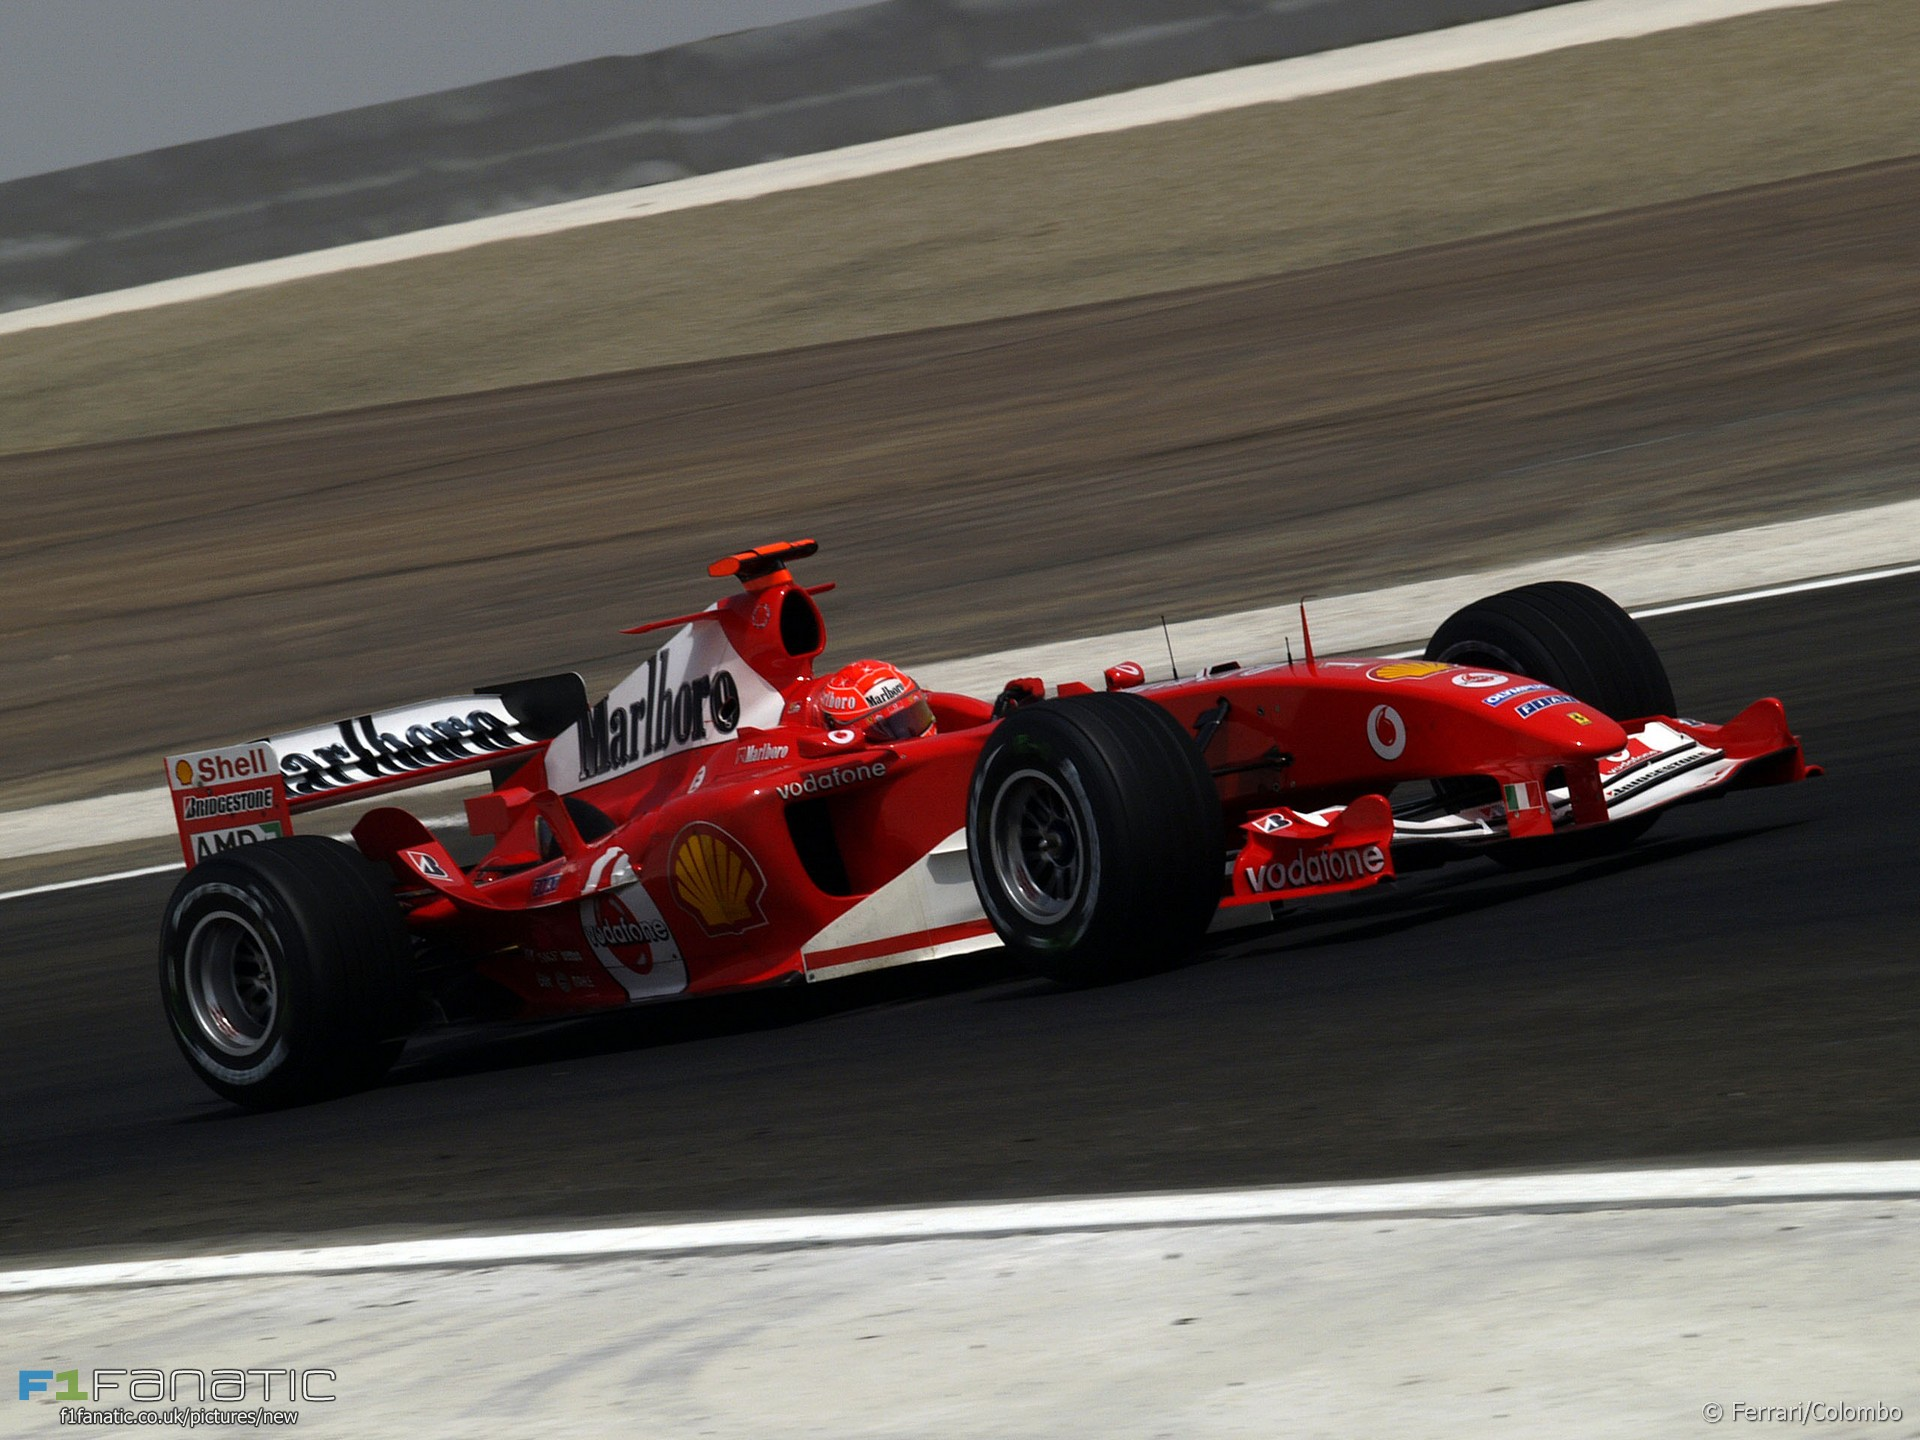 Michael Schumacher, Ferrari, Bahrain International Circuit, 2004